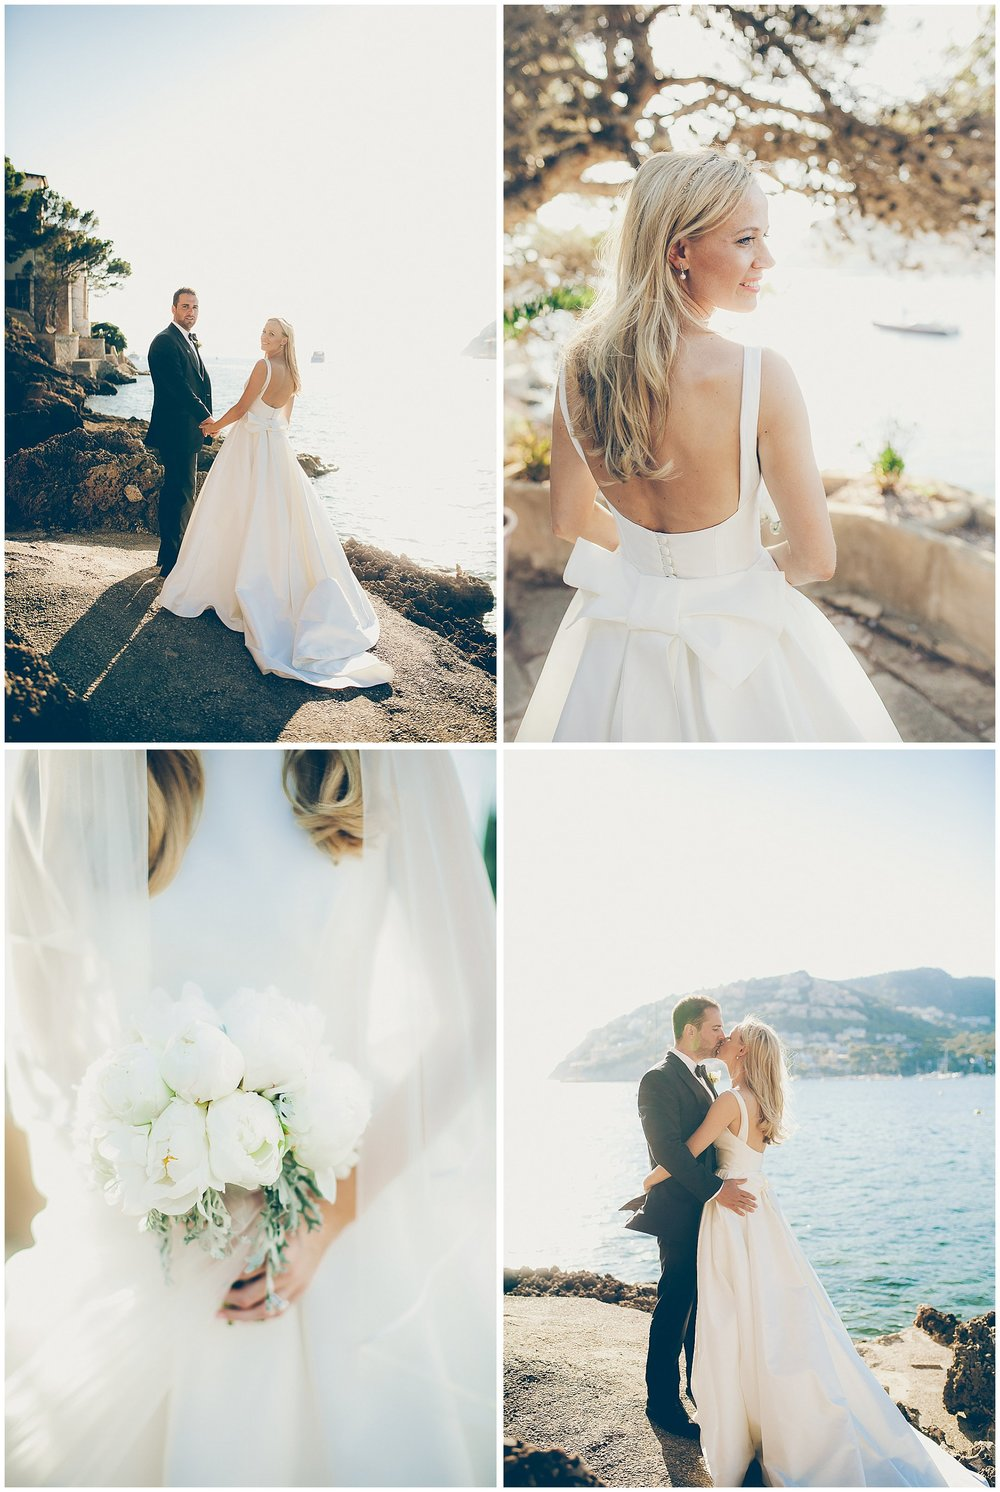 Church_VillaItalia_MallorcaWedding_FionaClairPhotography-151.jpg